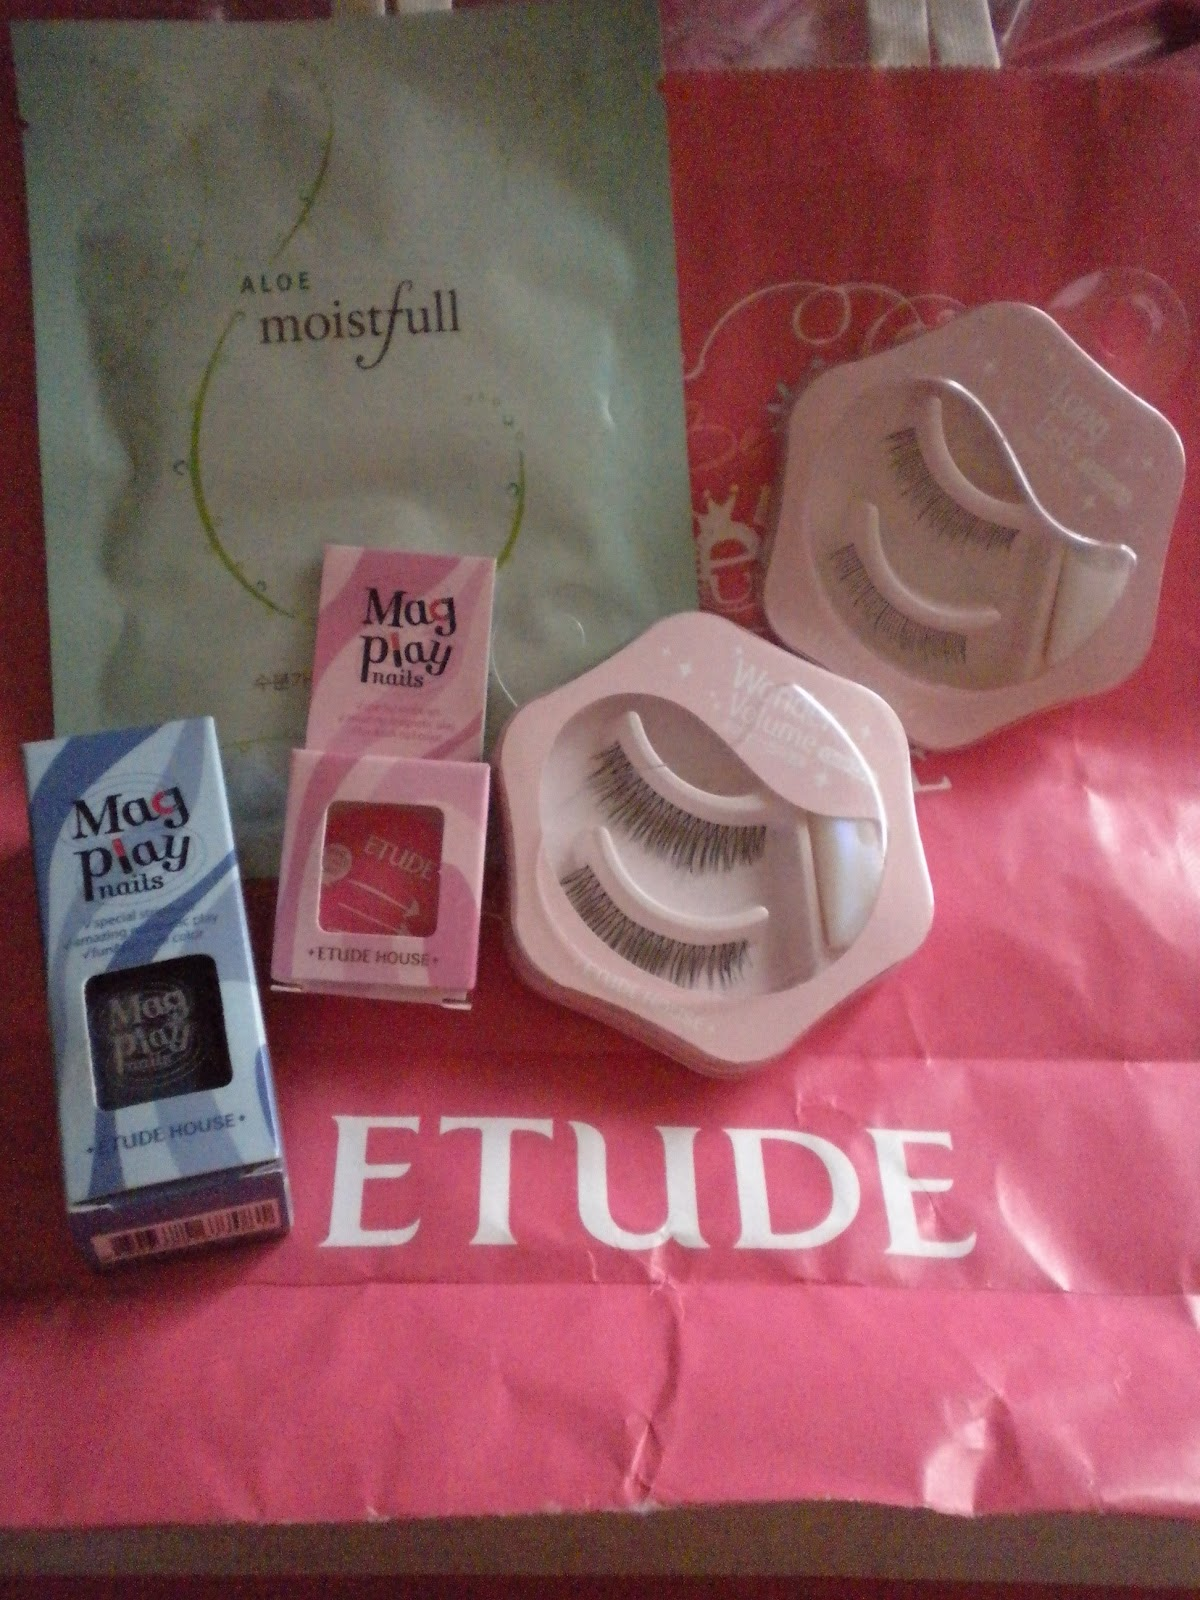 Dainty md unexpected monthsary gift and i got this tiny package from my bf i was really surprised because he wento to etude house all by himself and picked out these kikay items for me negle Image collections